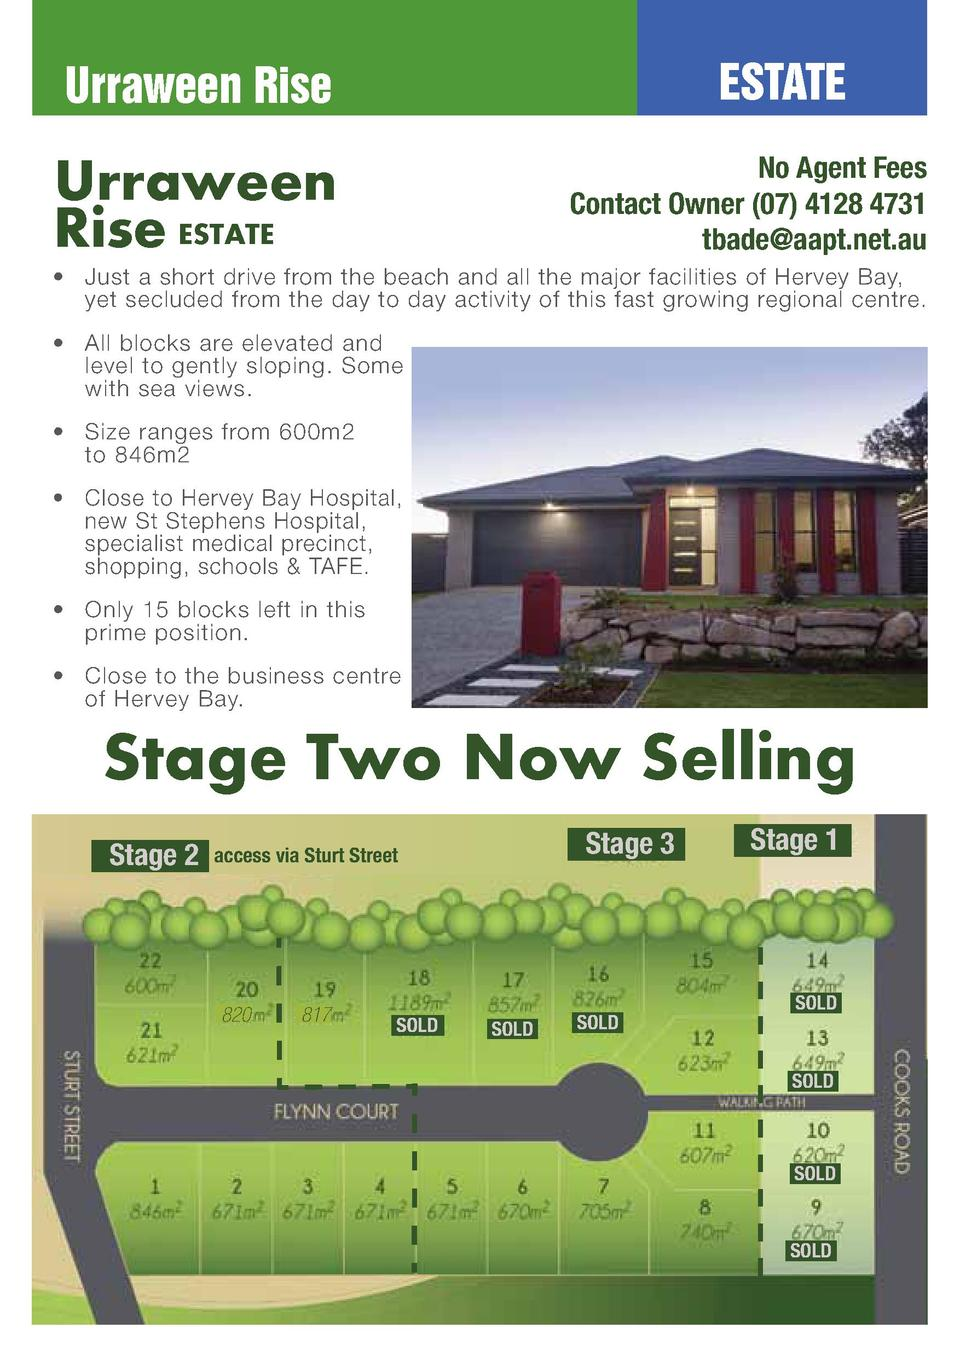 ESTATE  Urraween Rise  No Agent Fees Contact Owner  07  4128 4731 tbade aapt.net.au  Urraween Rise ESTATE       Just a sho...